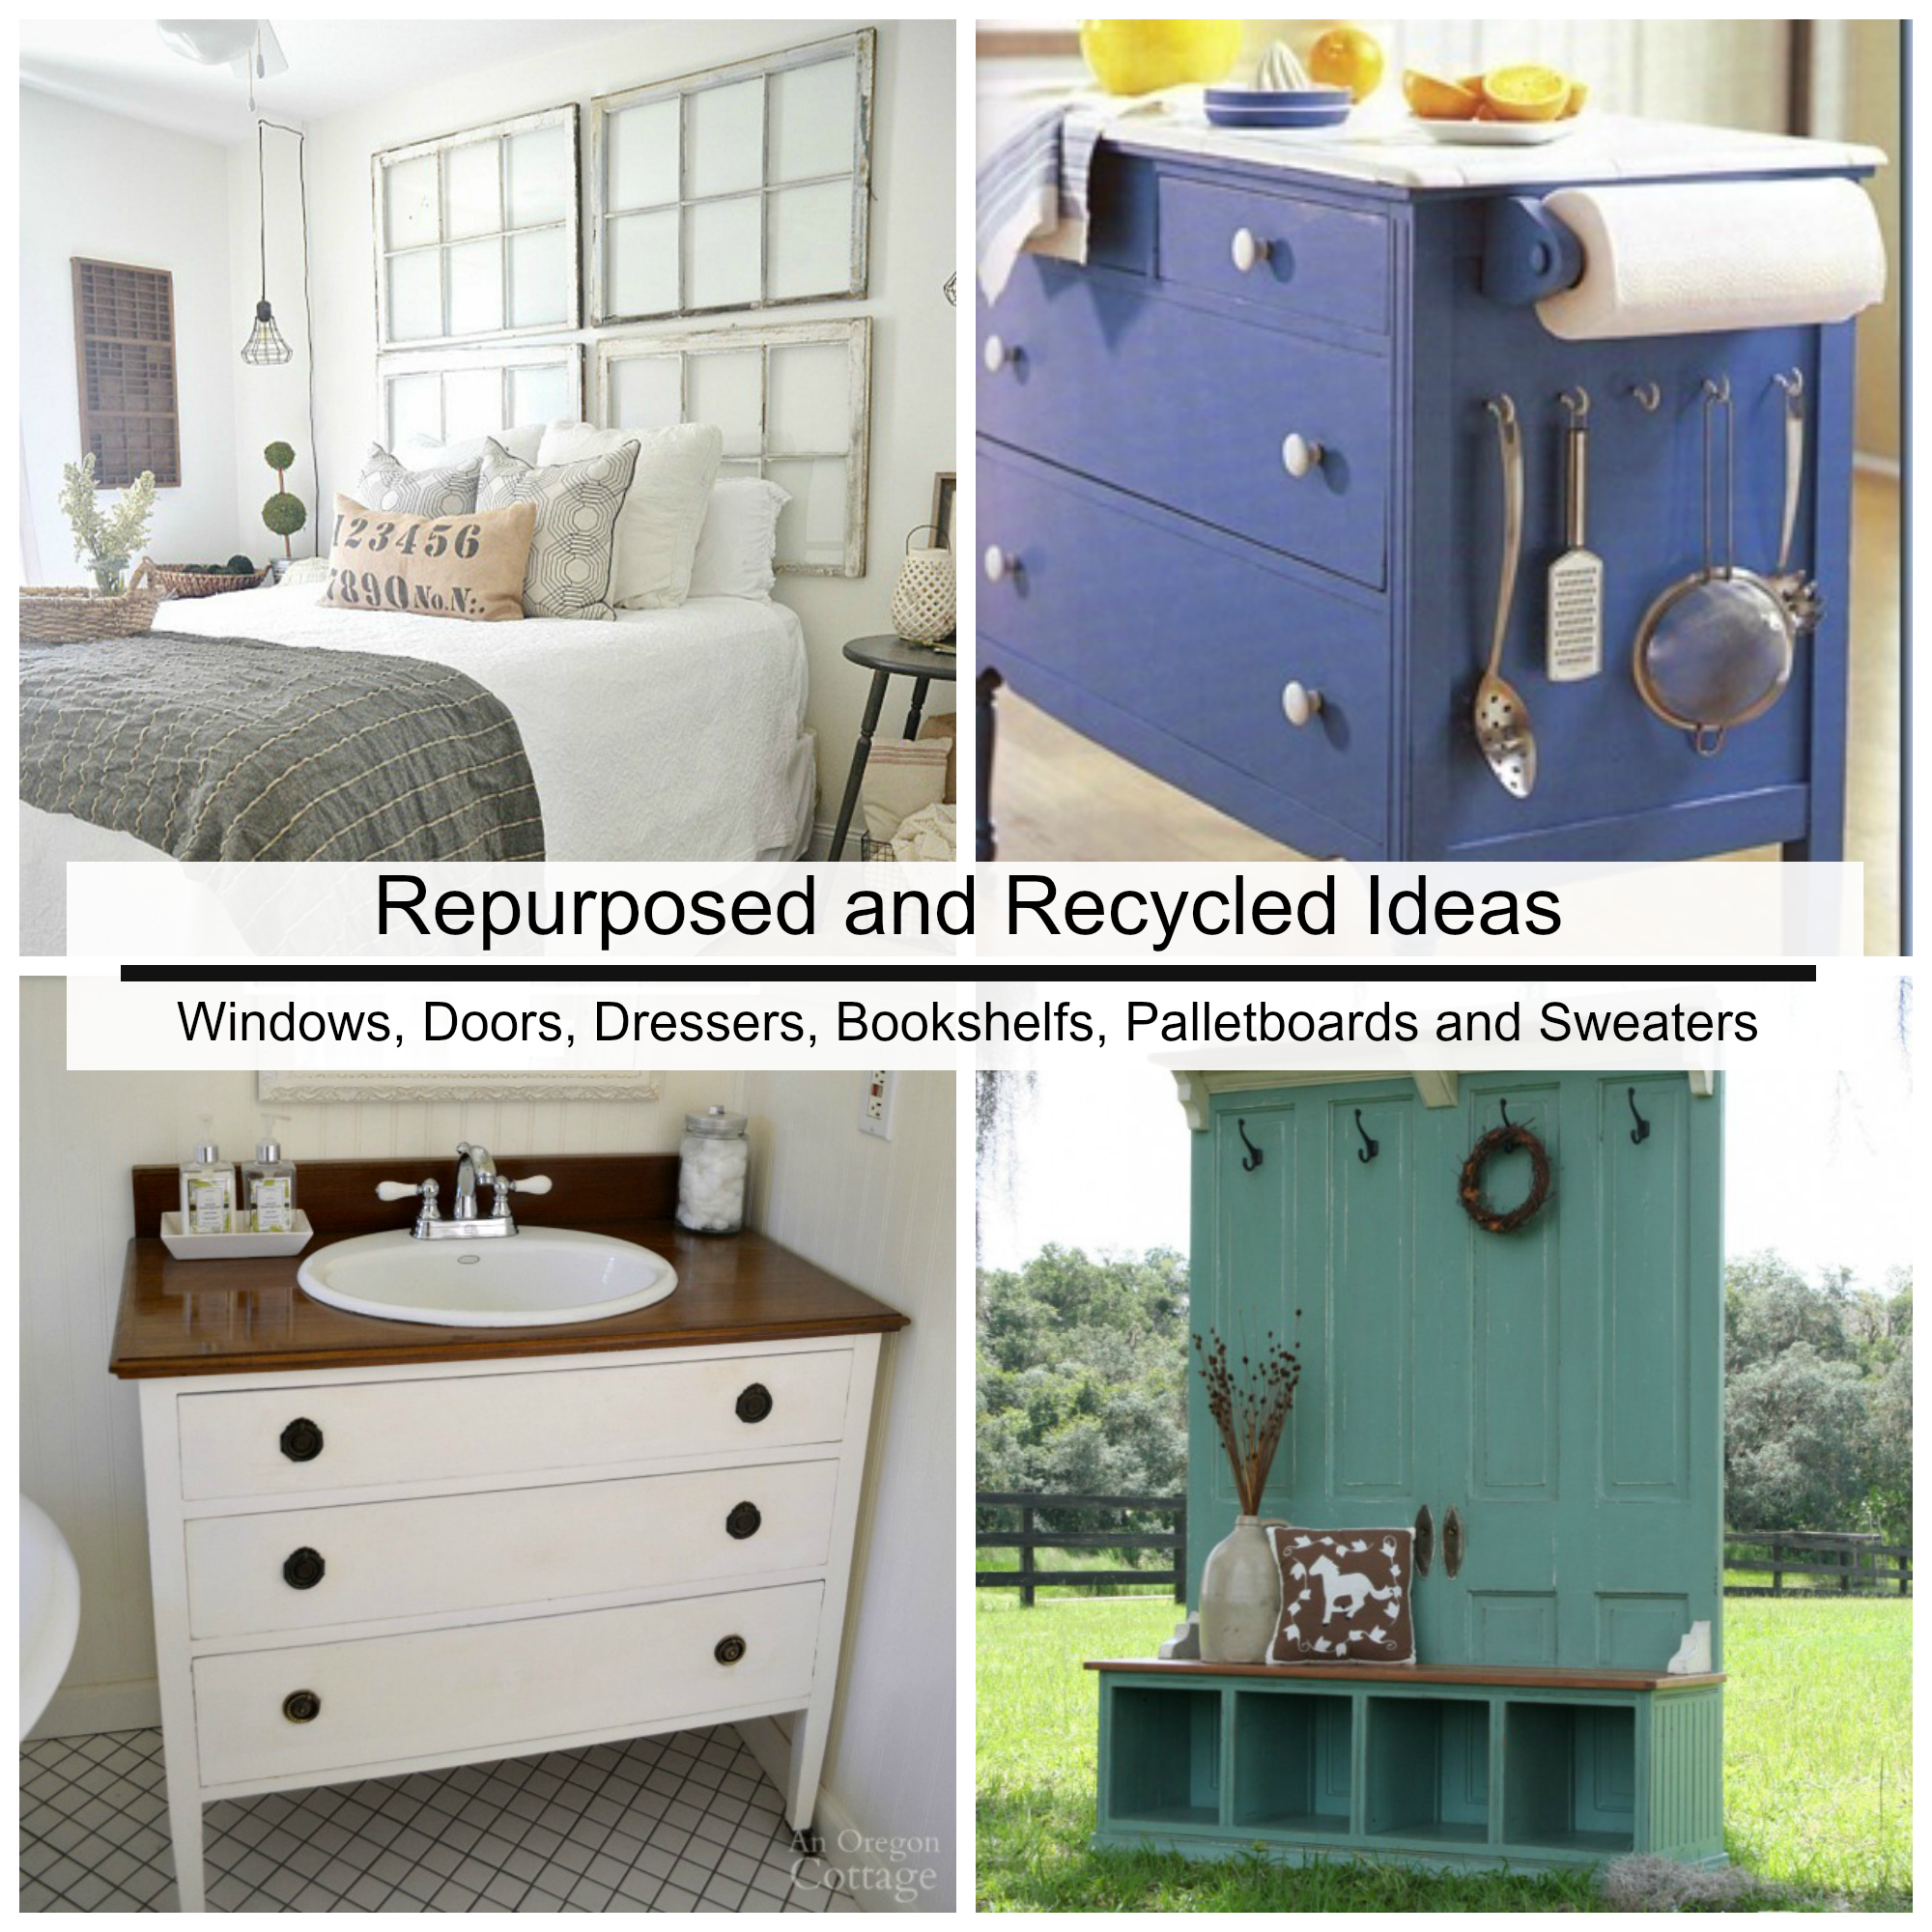 Repurposed-Recycled-Ideas-Old-Windows-Doors-Palletboards-Sweaters